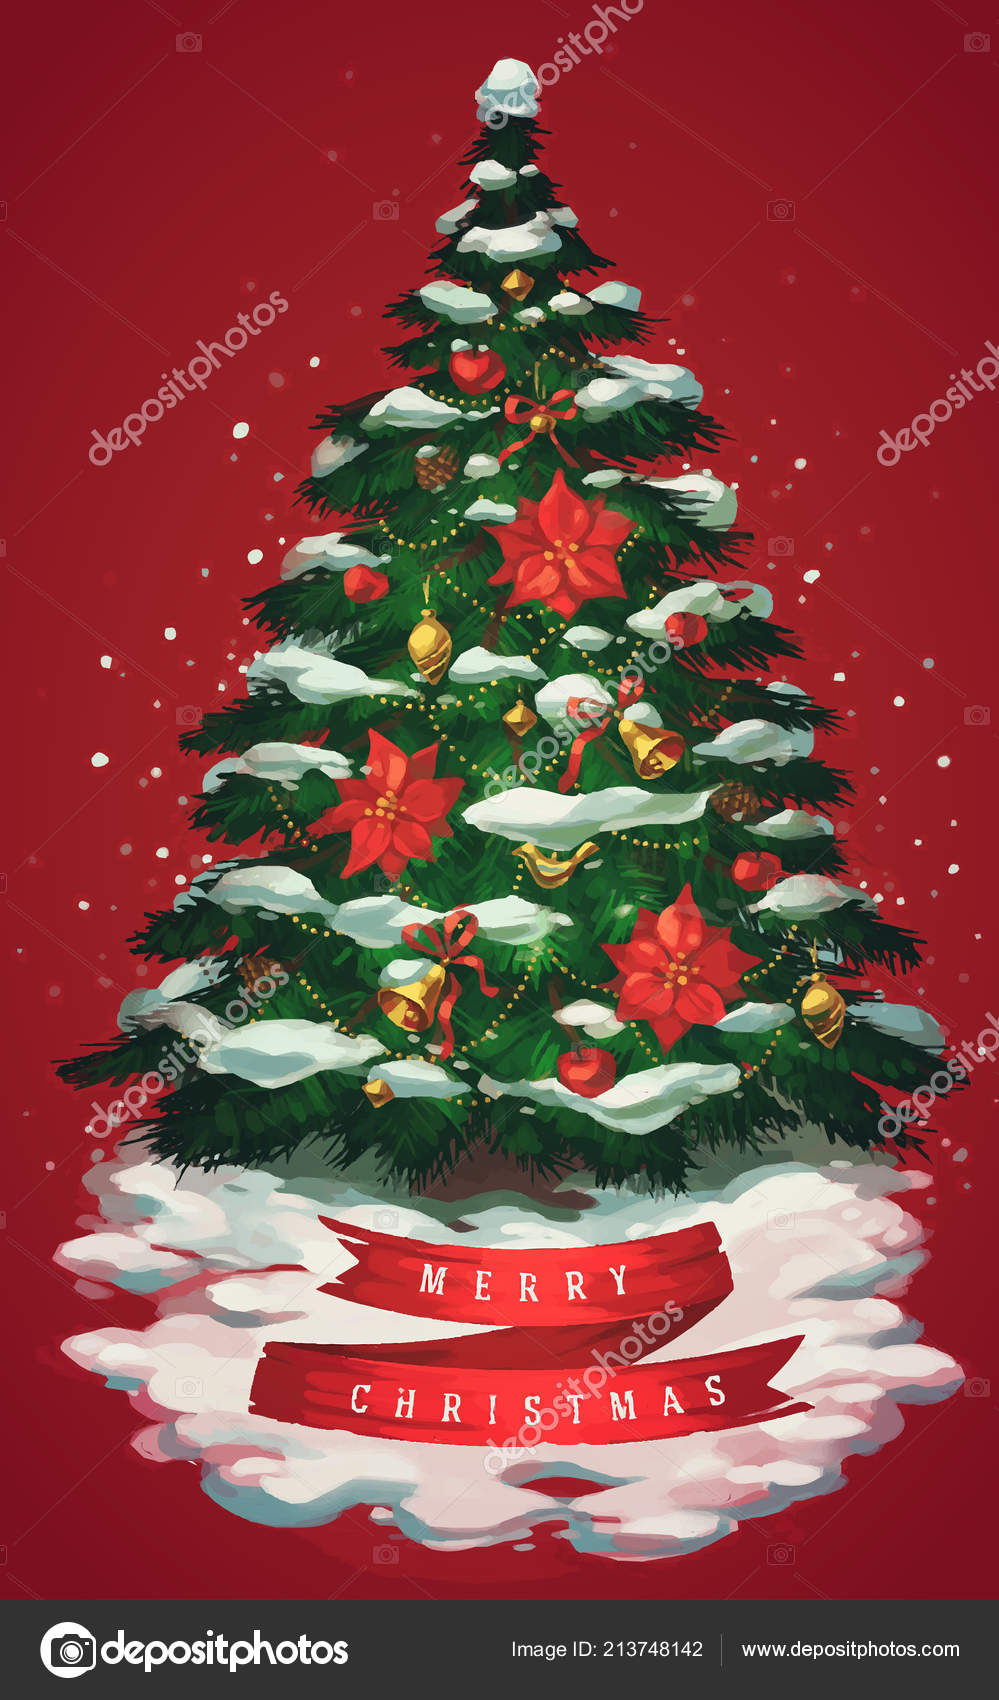 Vintage Christmas Tree Art Greeting Card Poster Banner Vector Illustration Stock Vector C Darumo 213748142